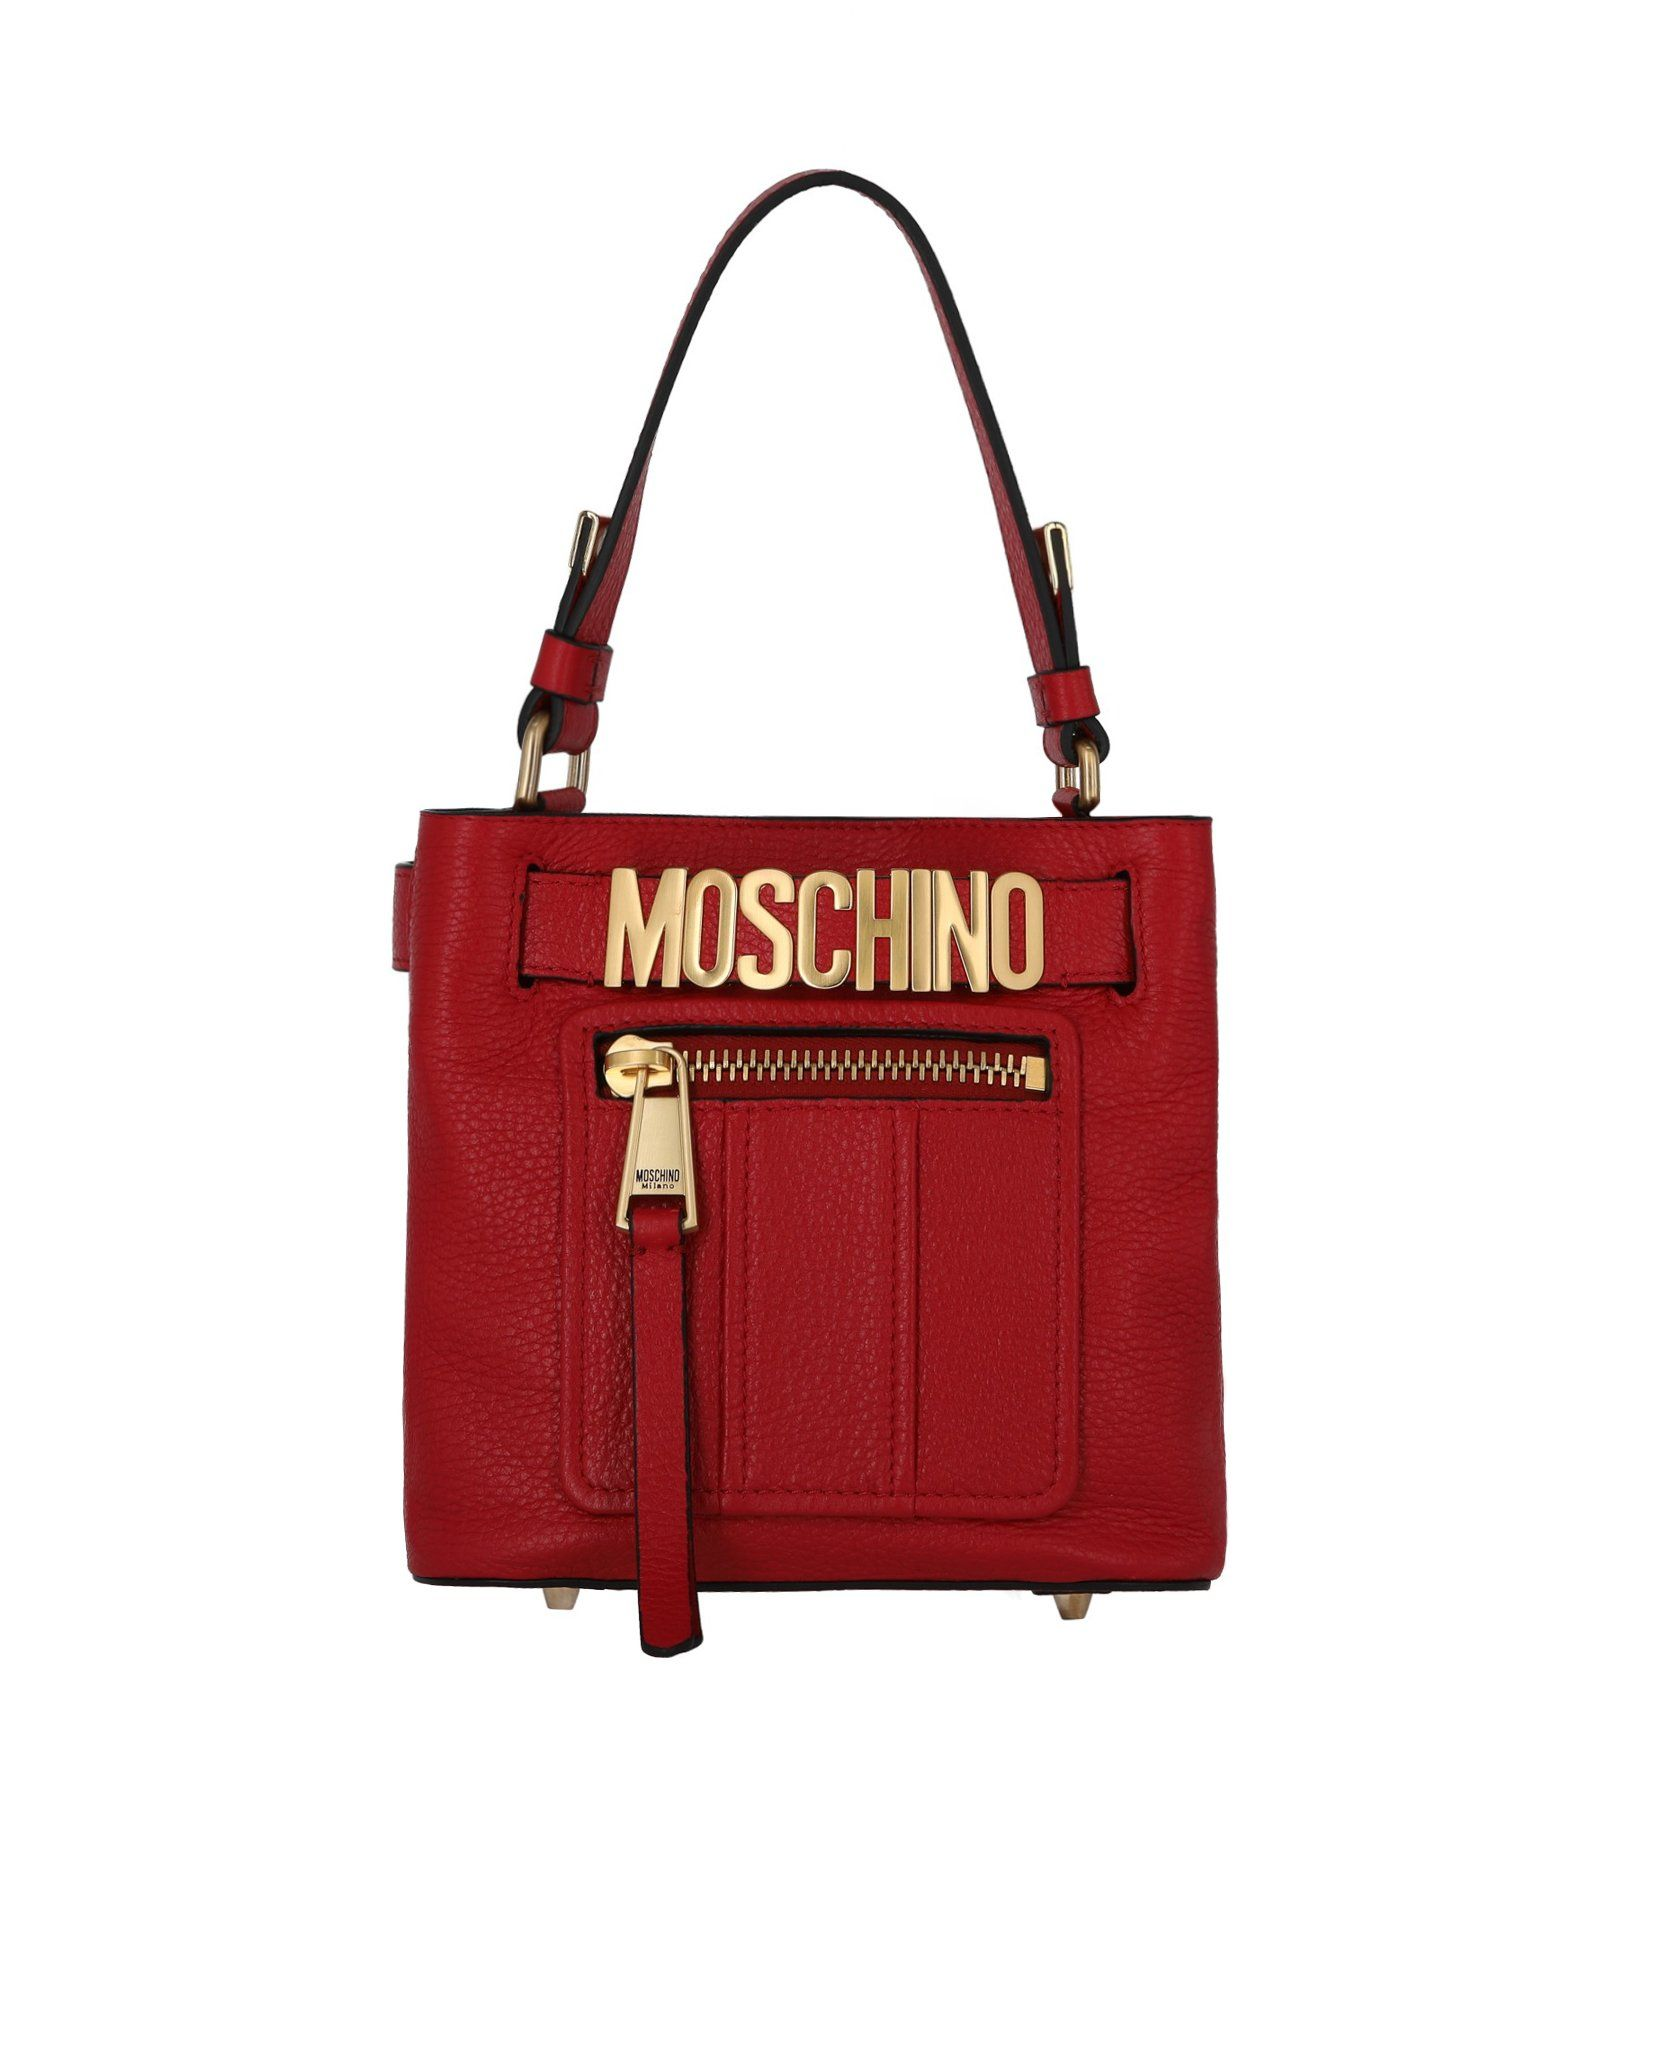 9a619795df Moschino Convertible Leather Shoulder Bag